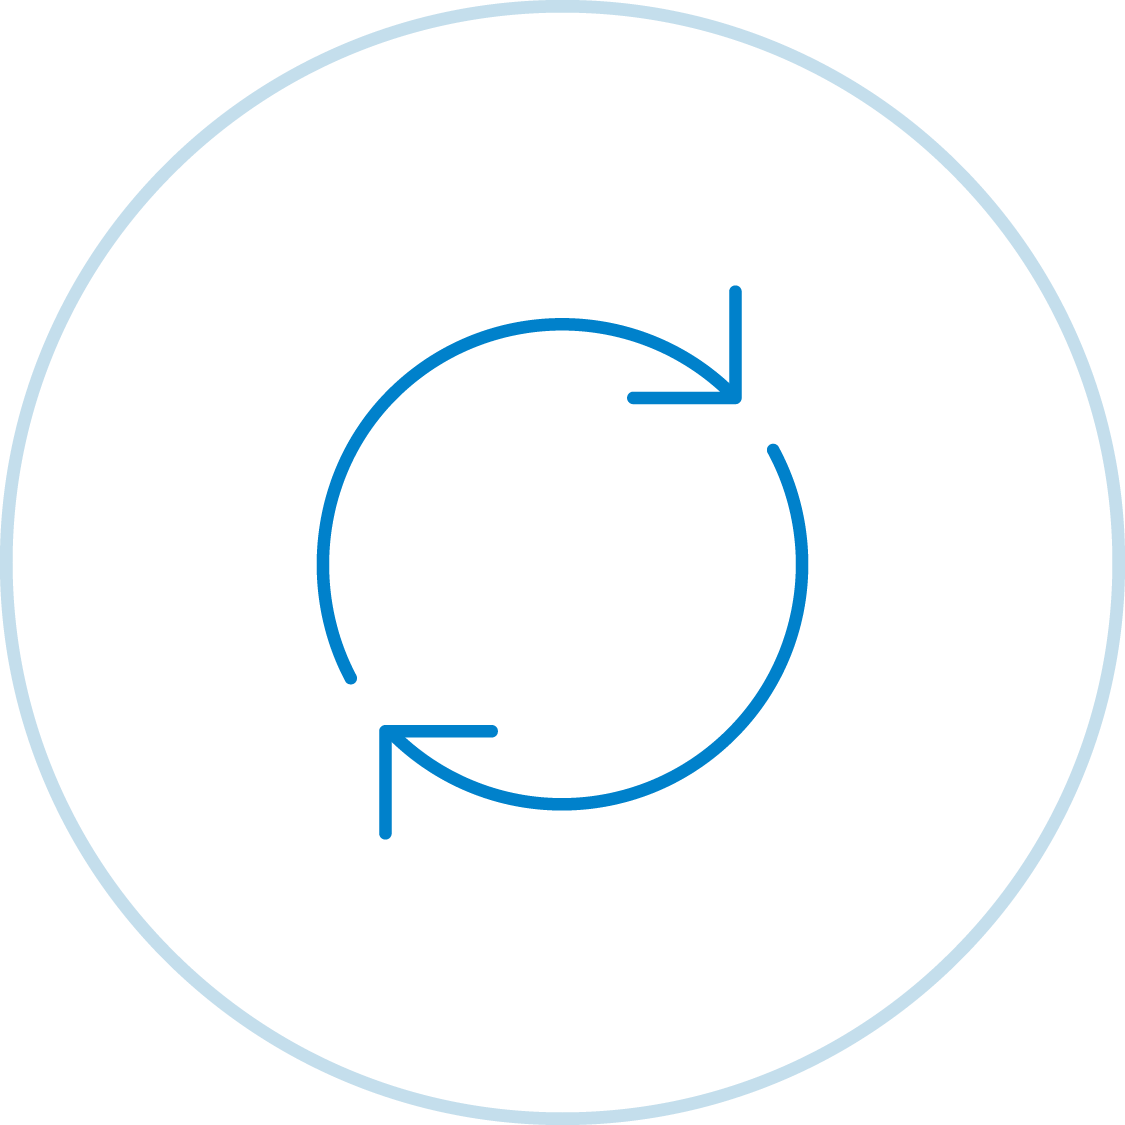 Image of arrows in circle